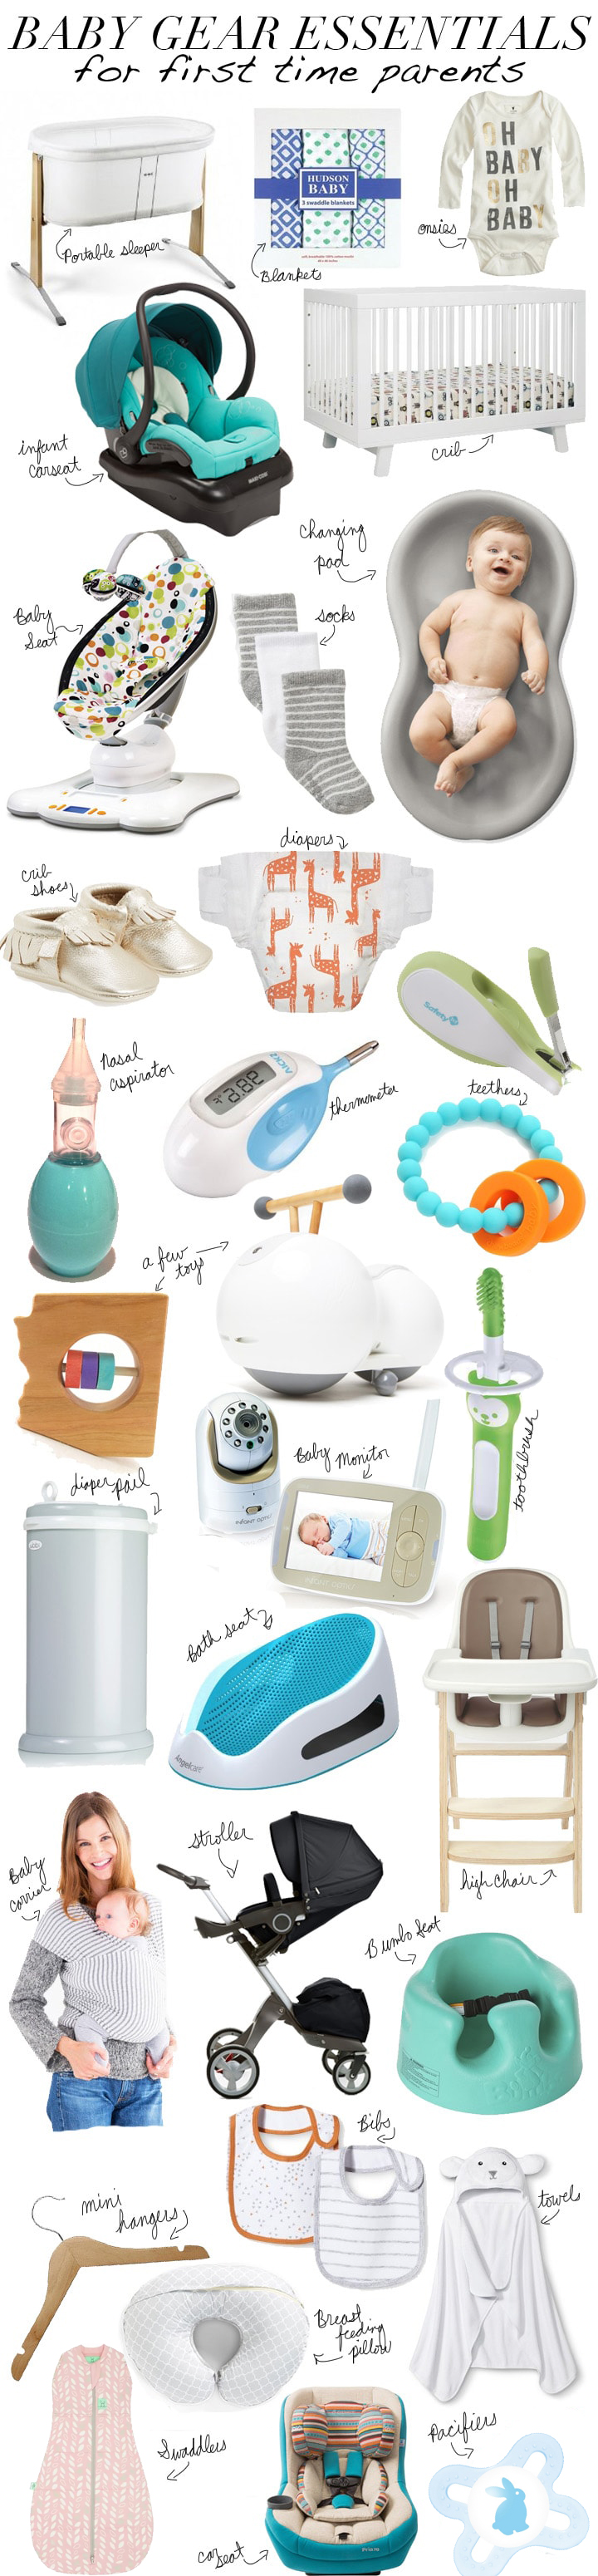 Baby gear checklist first time parents | Baby Registry Must Haves